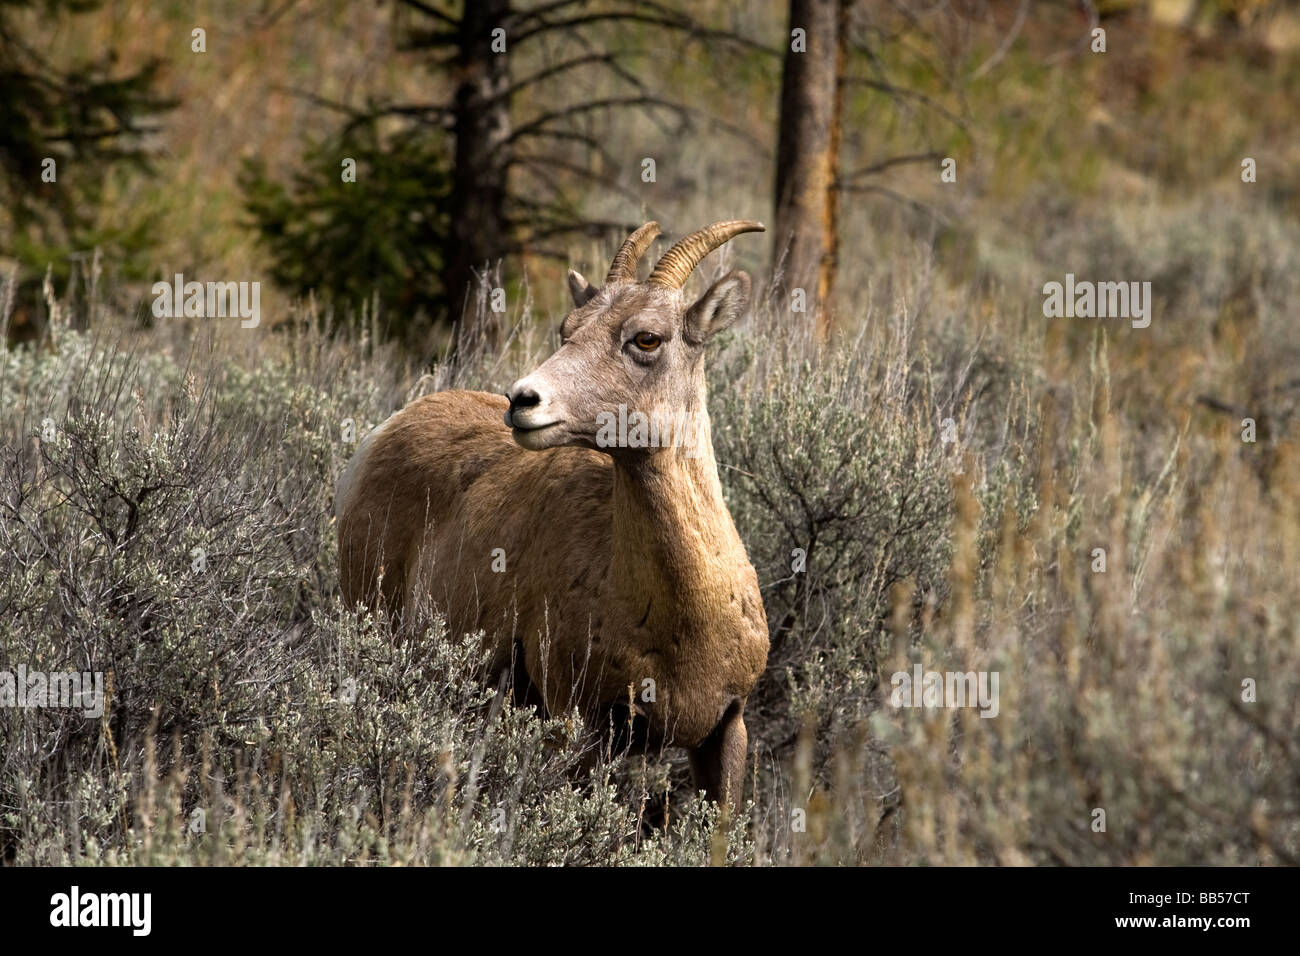 Big Horn Sheep in Yellowstone National Park. - Stock Image